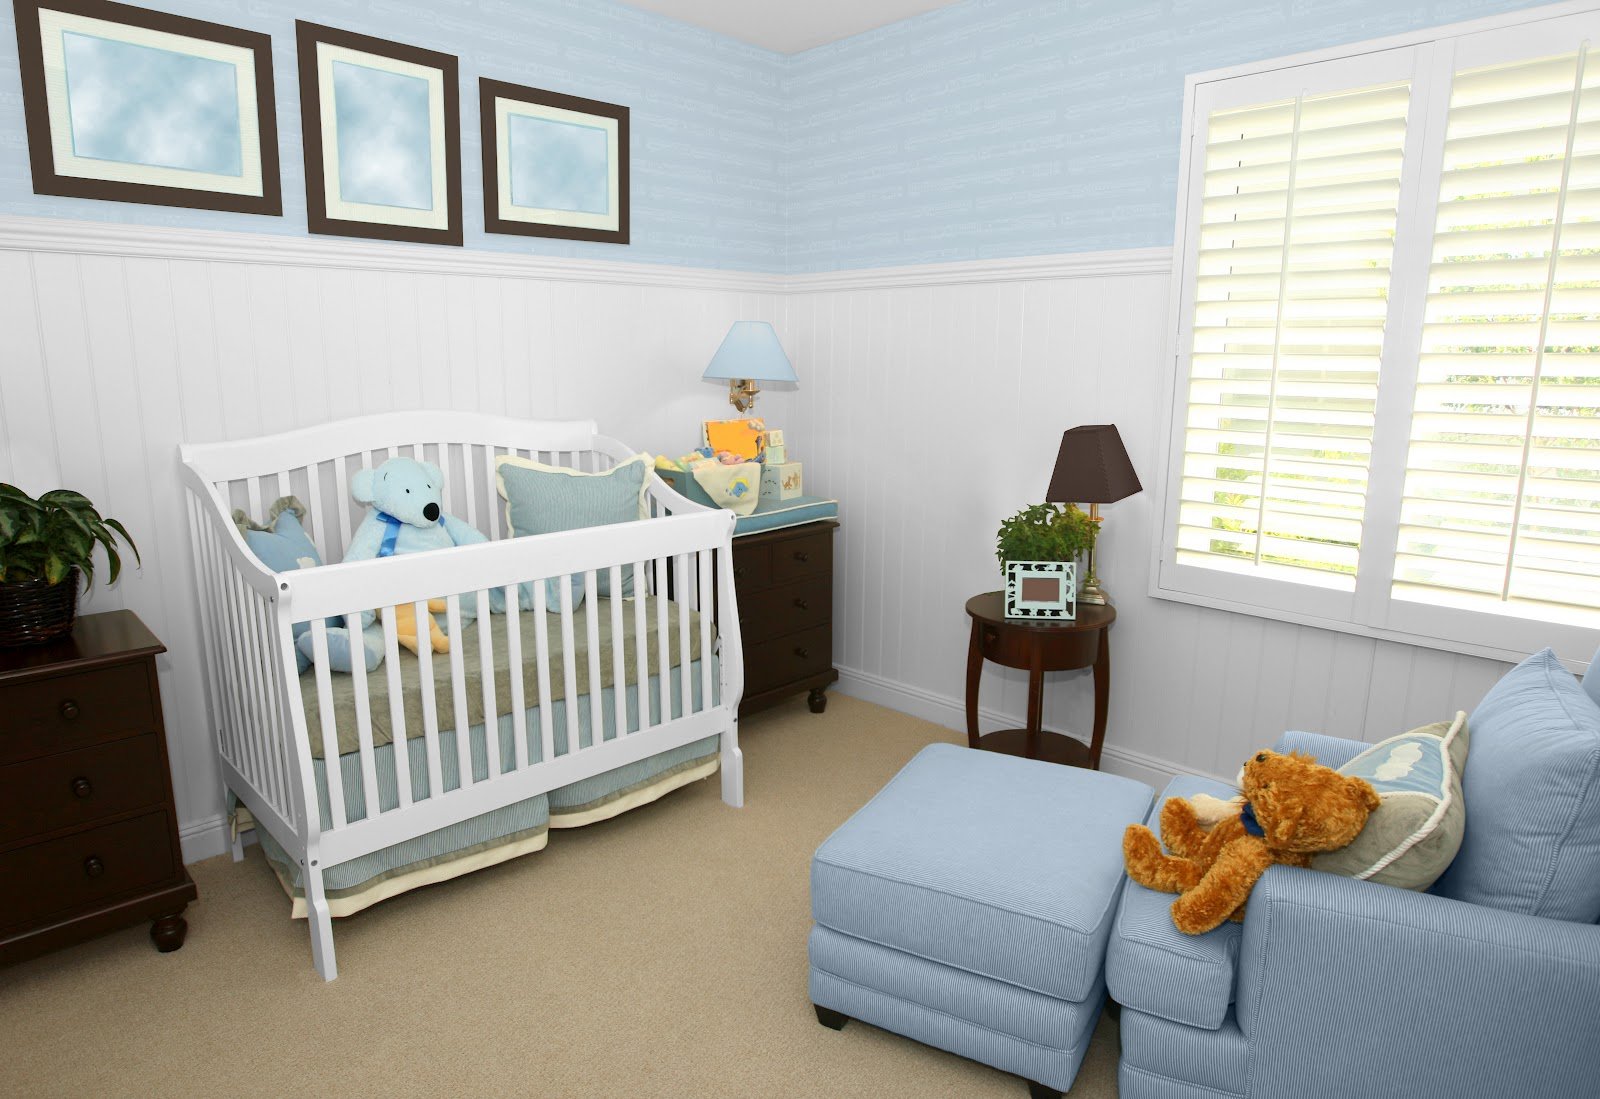 Top 10 baby nursery room colors and decorating ideas for Baby s room decoration ideas